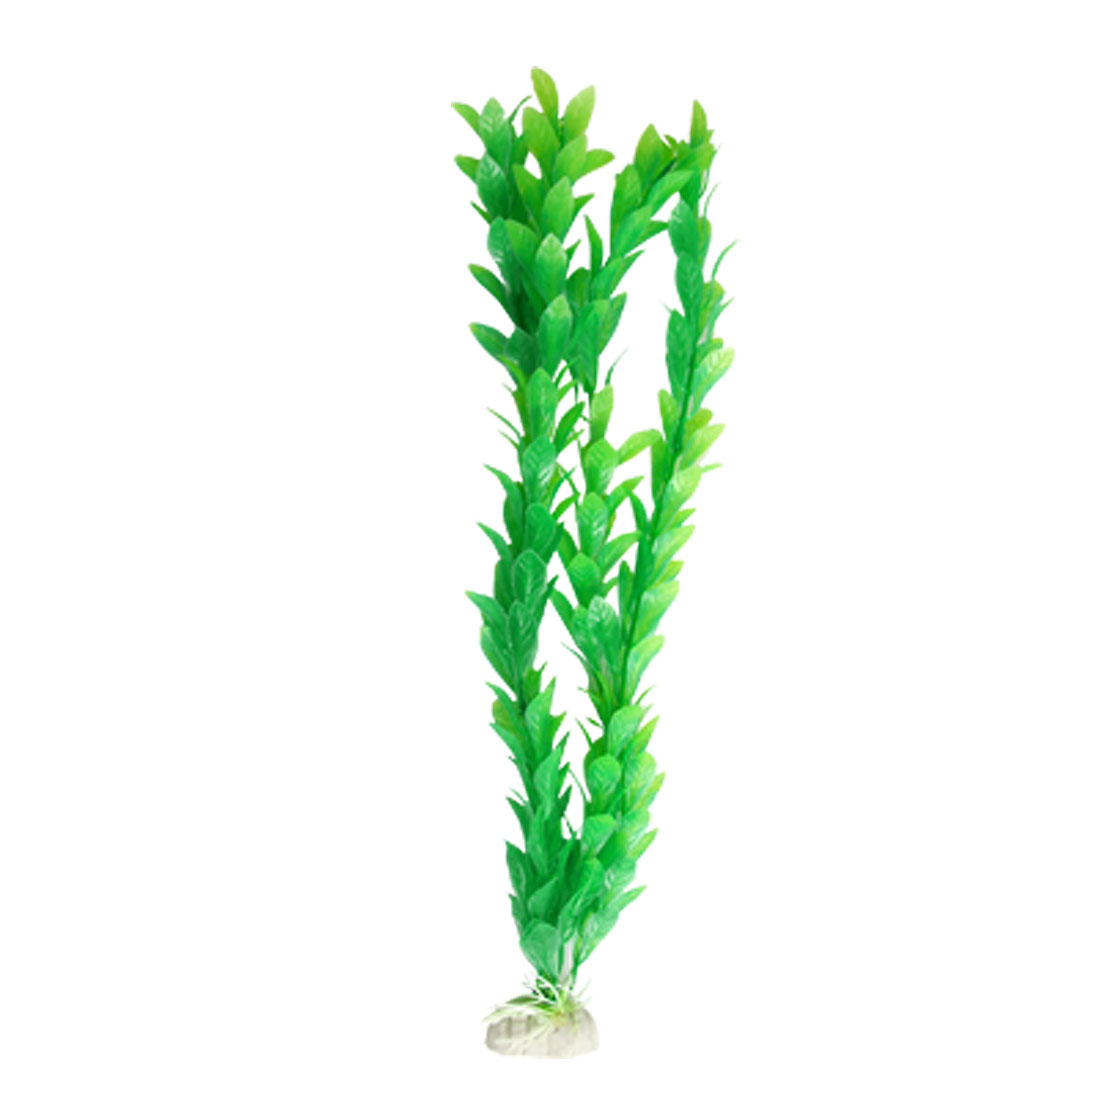 Oblanceolate Leaf 14 Inch Green Plastic Plant for Aquarium